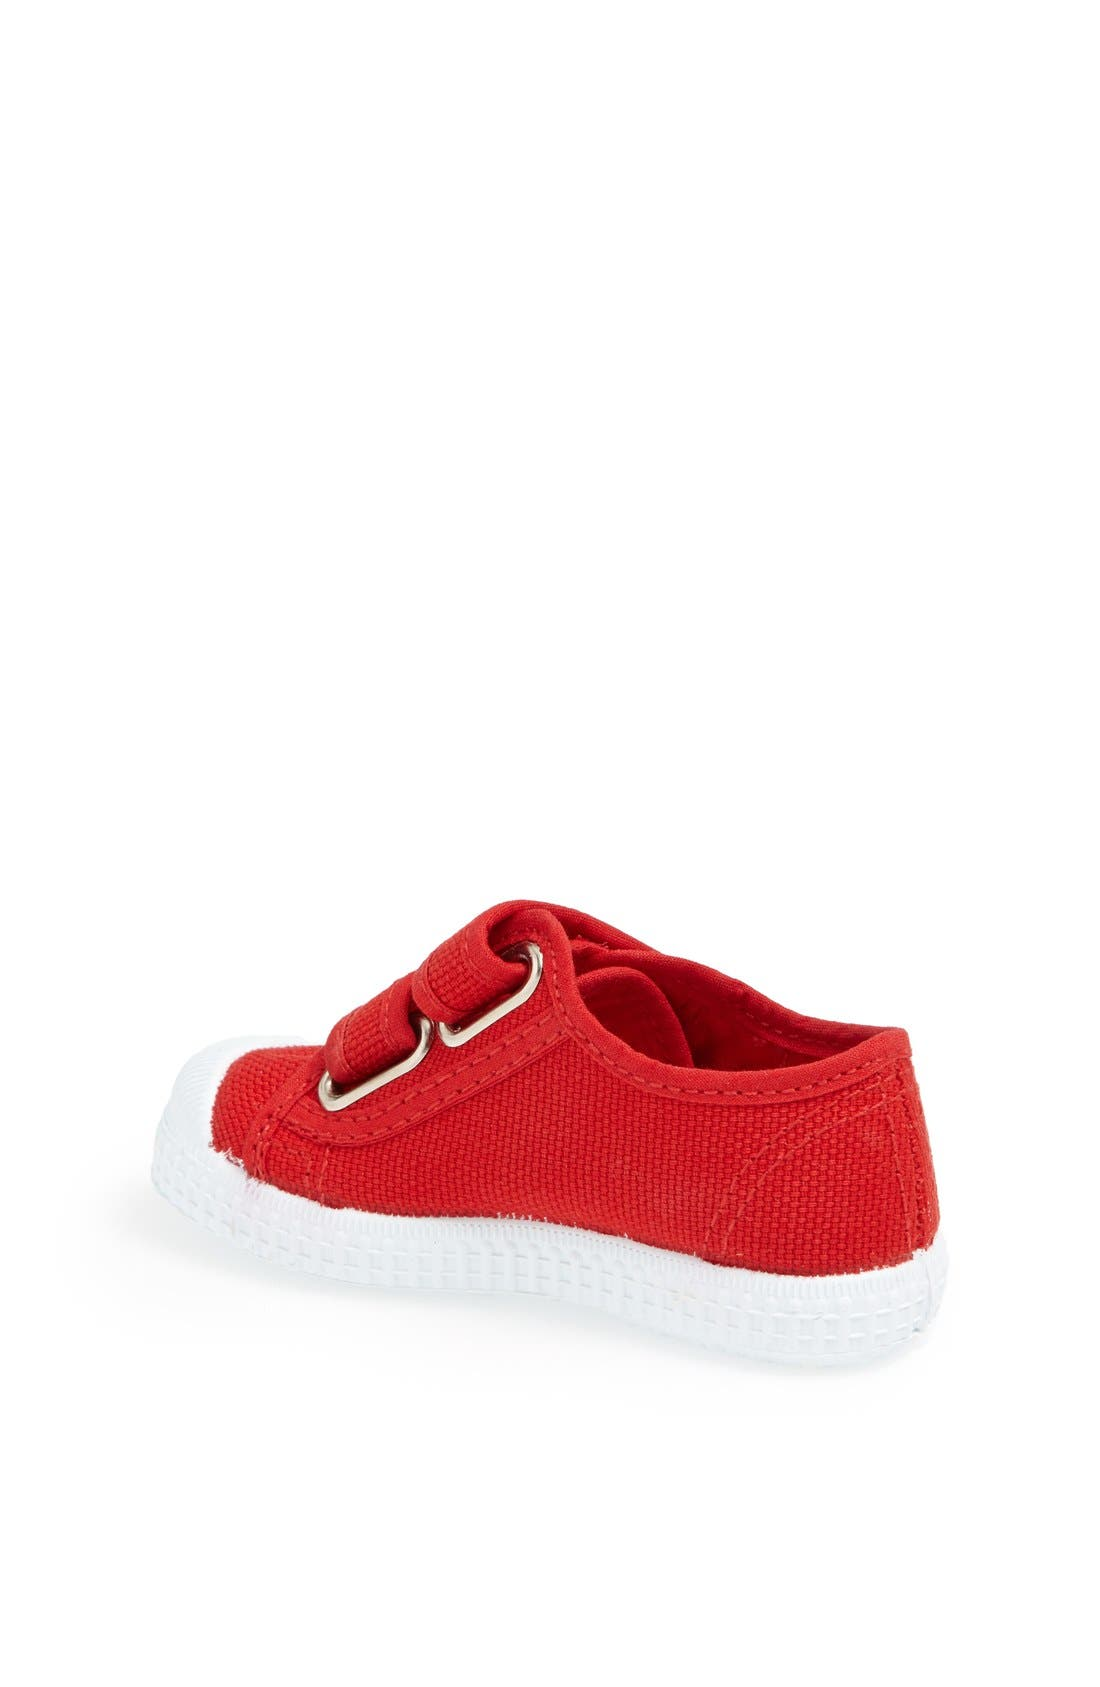 Canvas Sneaker,                             Alternate thumbnail 2, color,                             Red